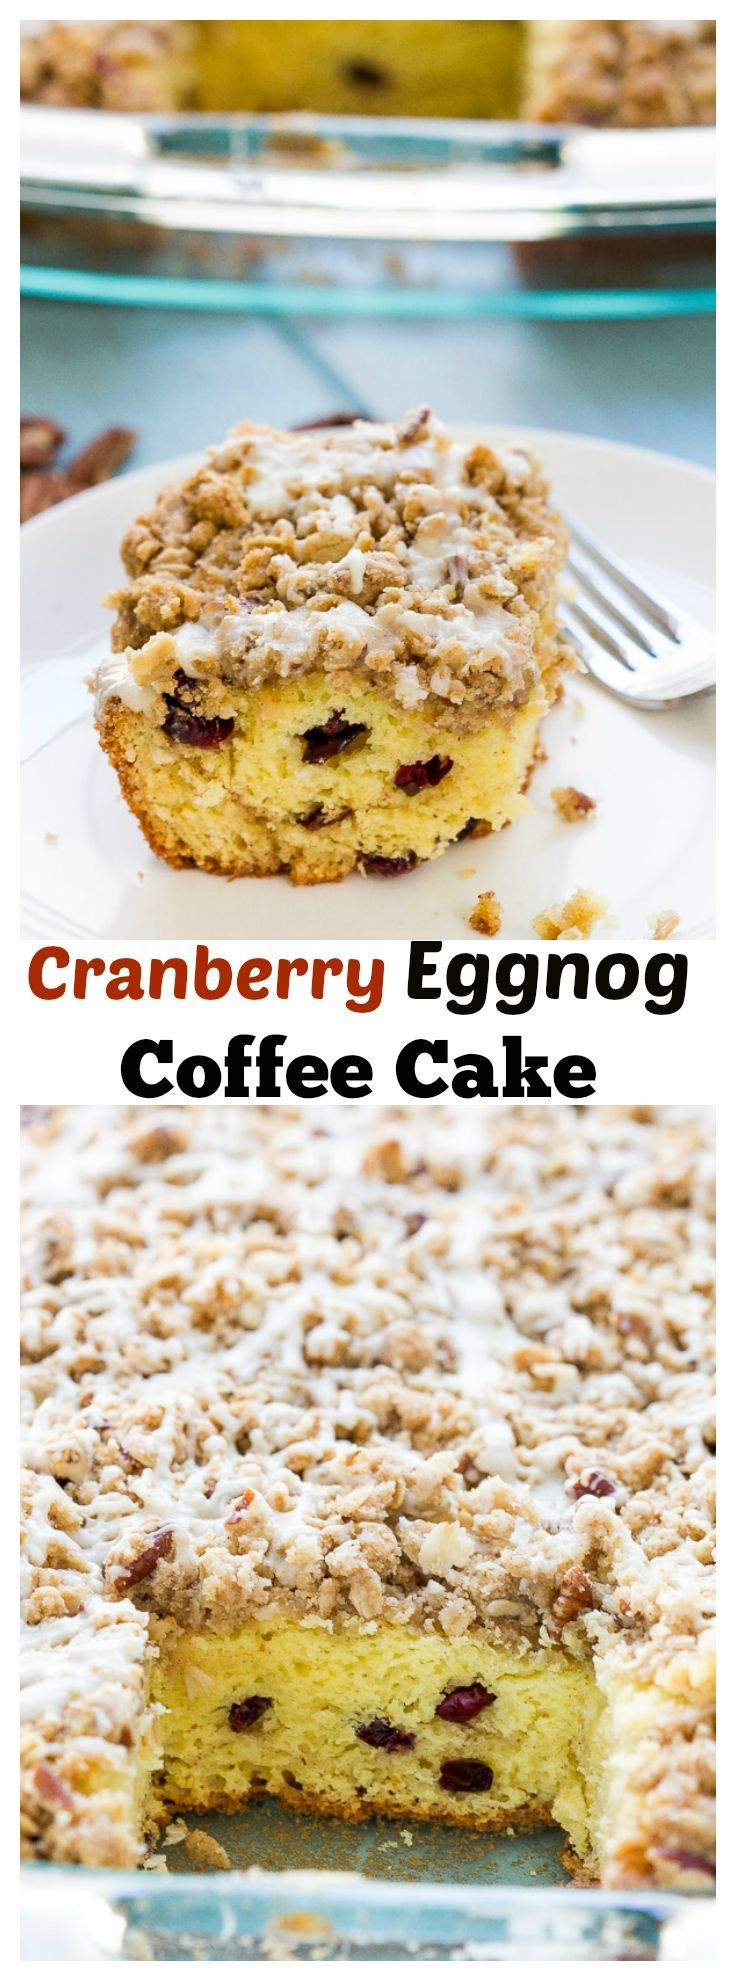 ... cheese coffee cake, Apple coffee cakes and Blueberry coffee cakes